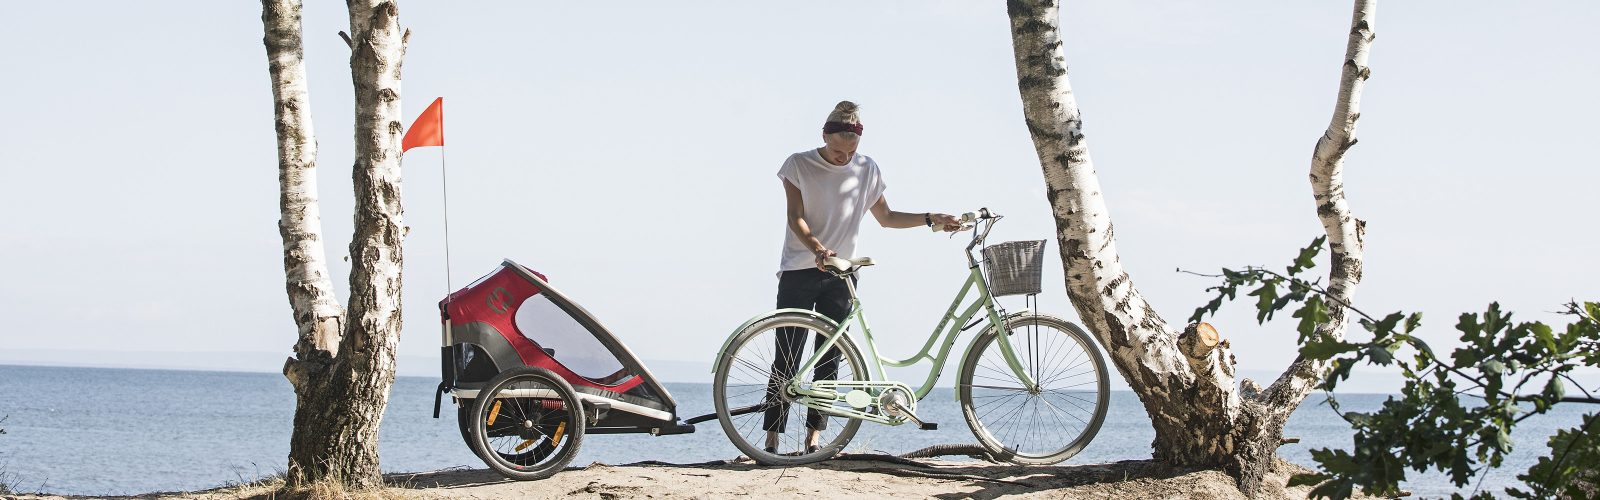 Hamax Outback Bike trailer on the beach